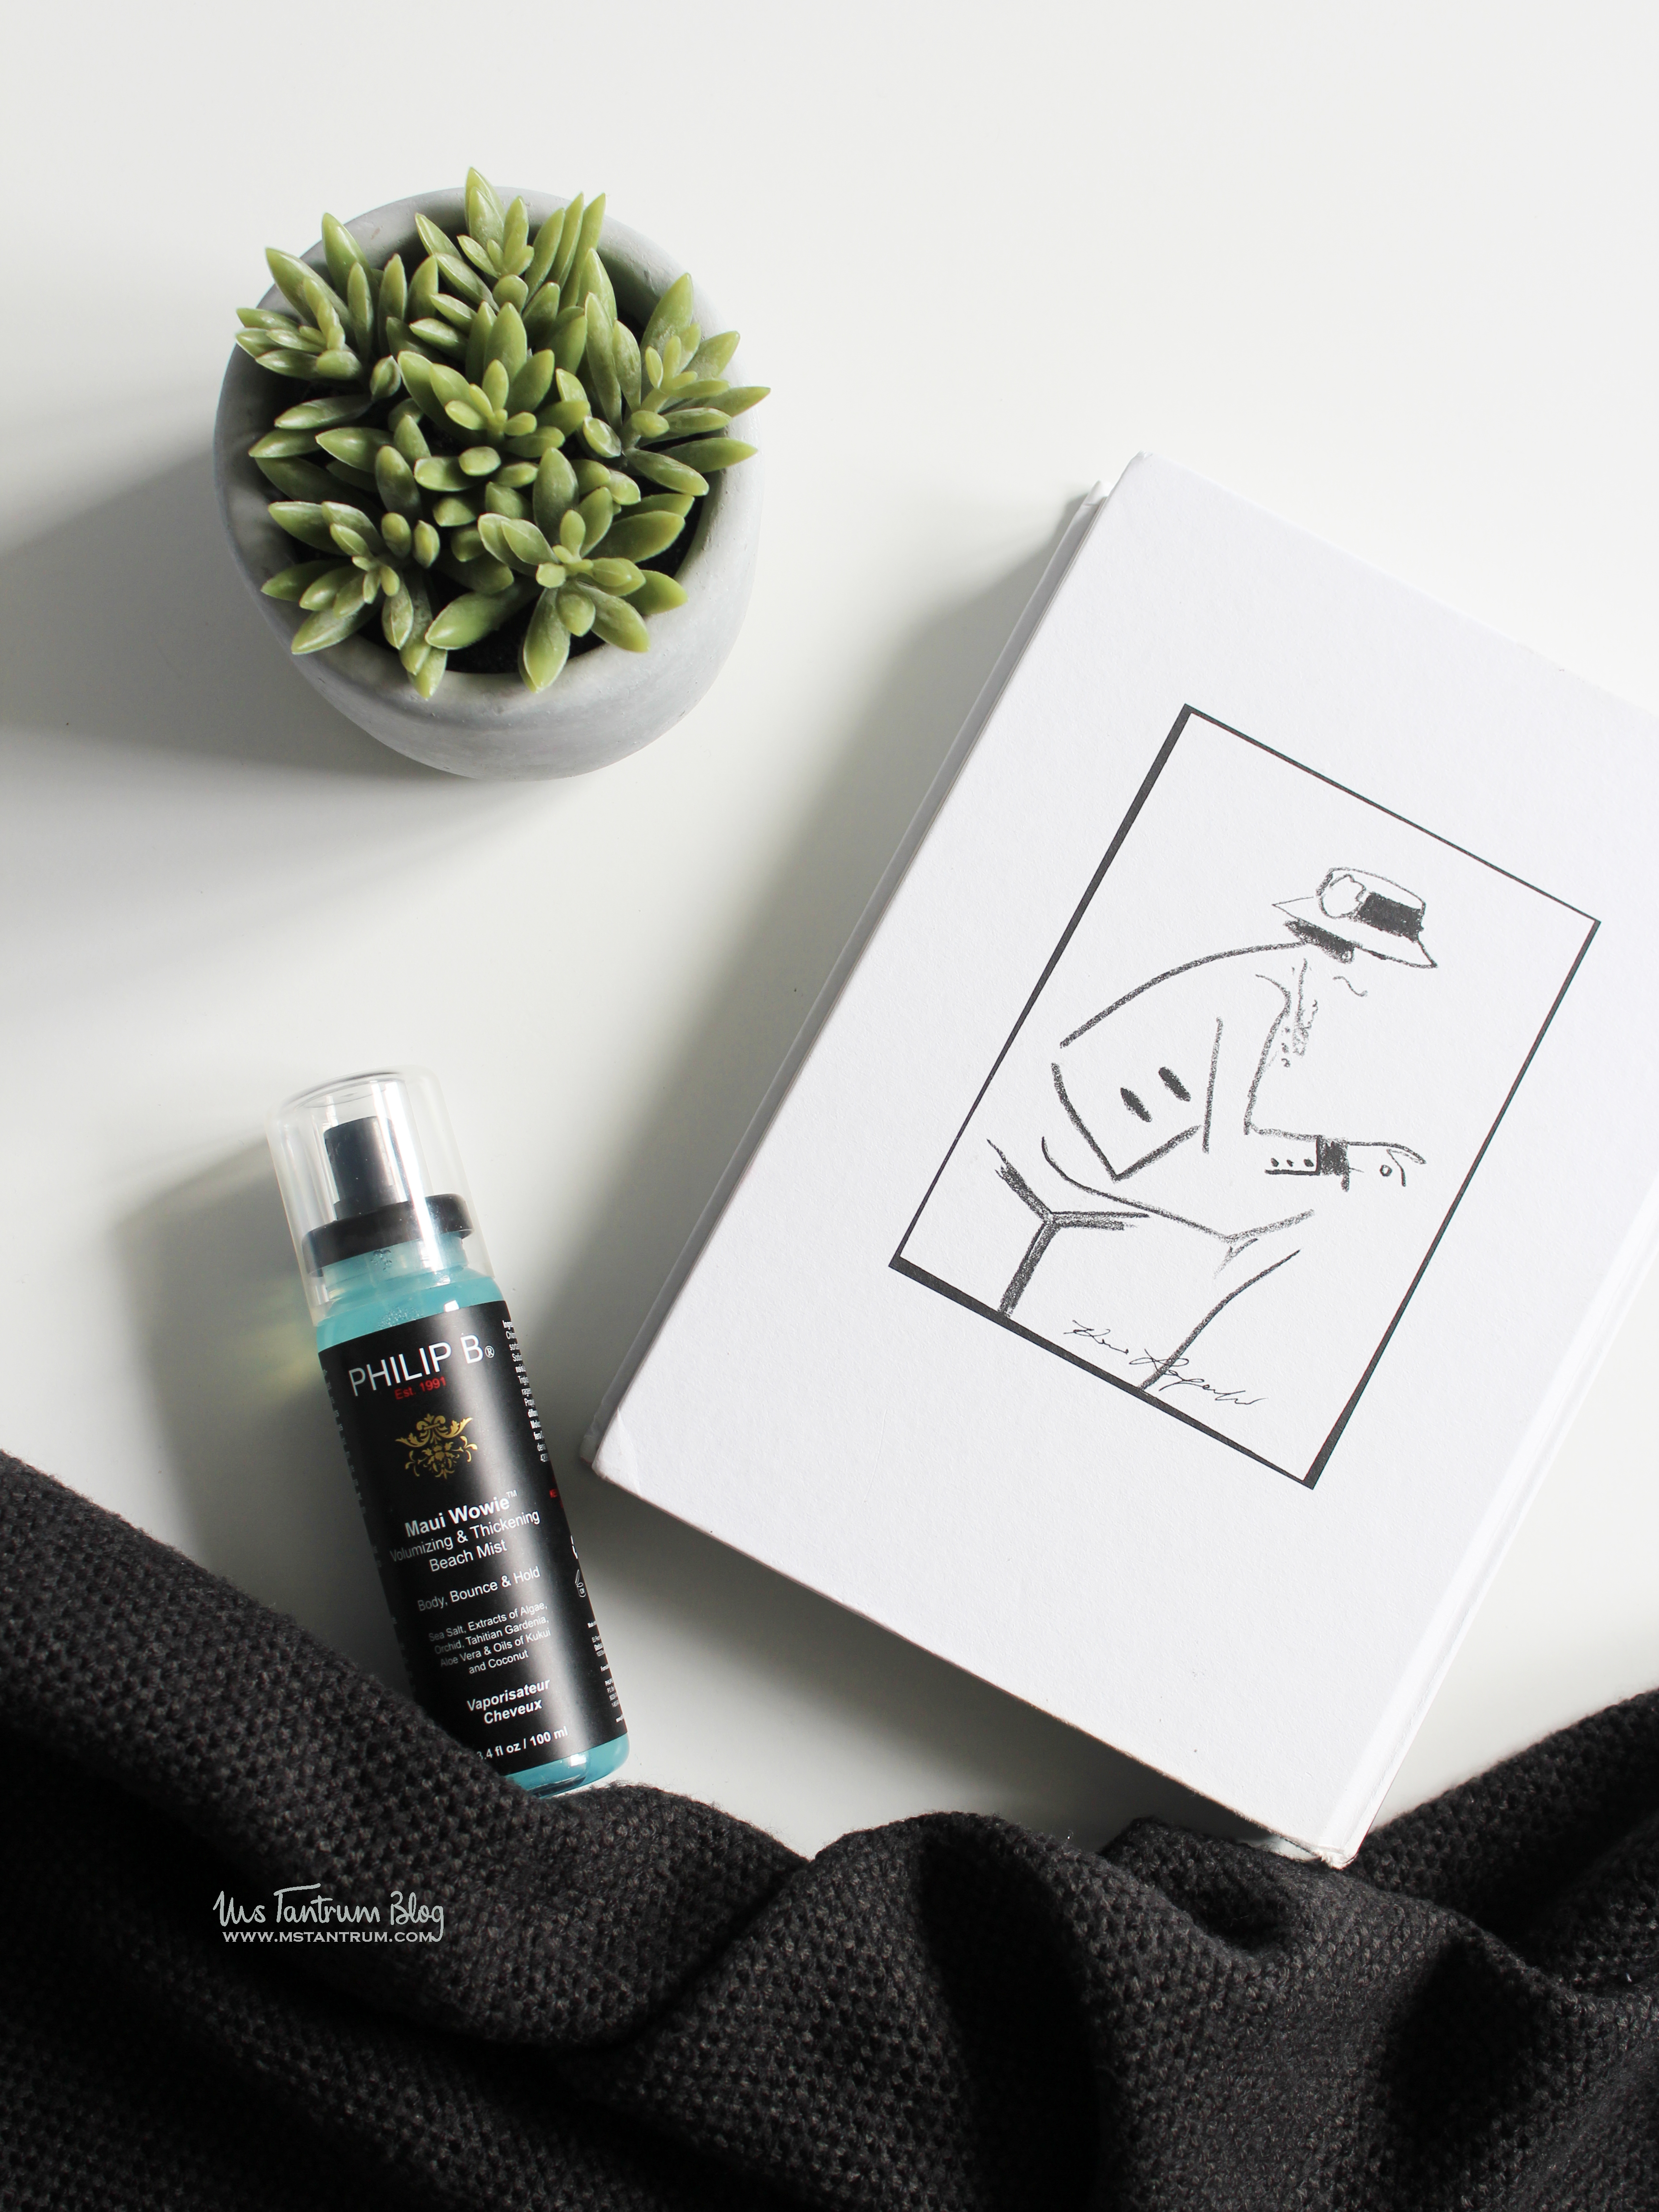 Philip B beach hair mist from Beauty Expert Natural collection kit + Discount code